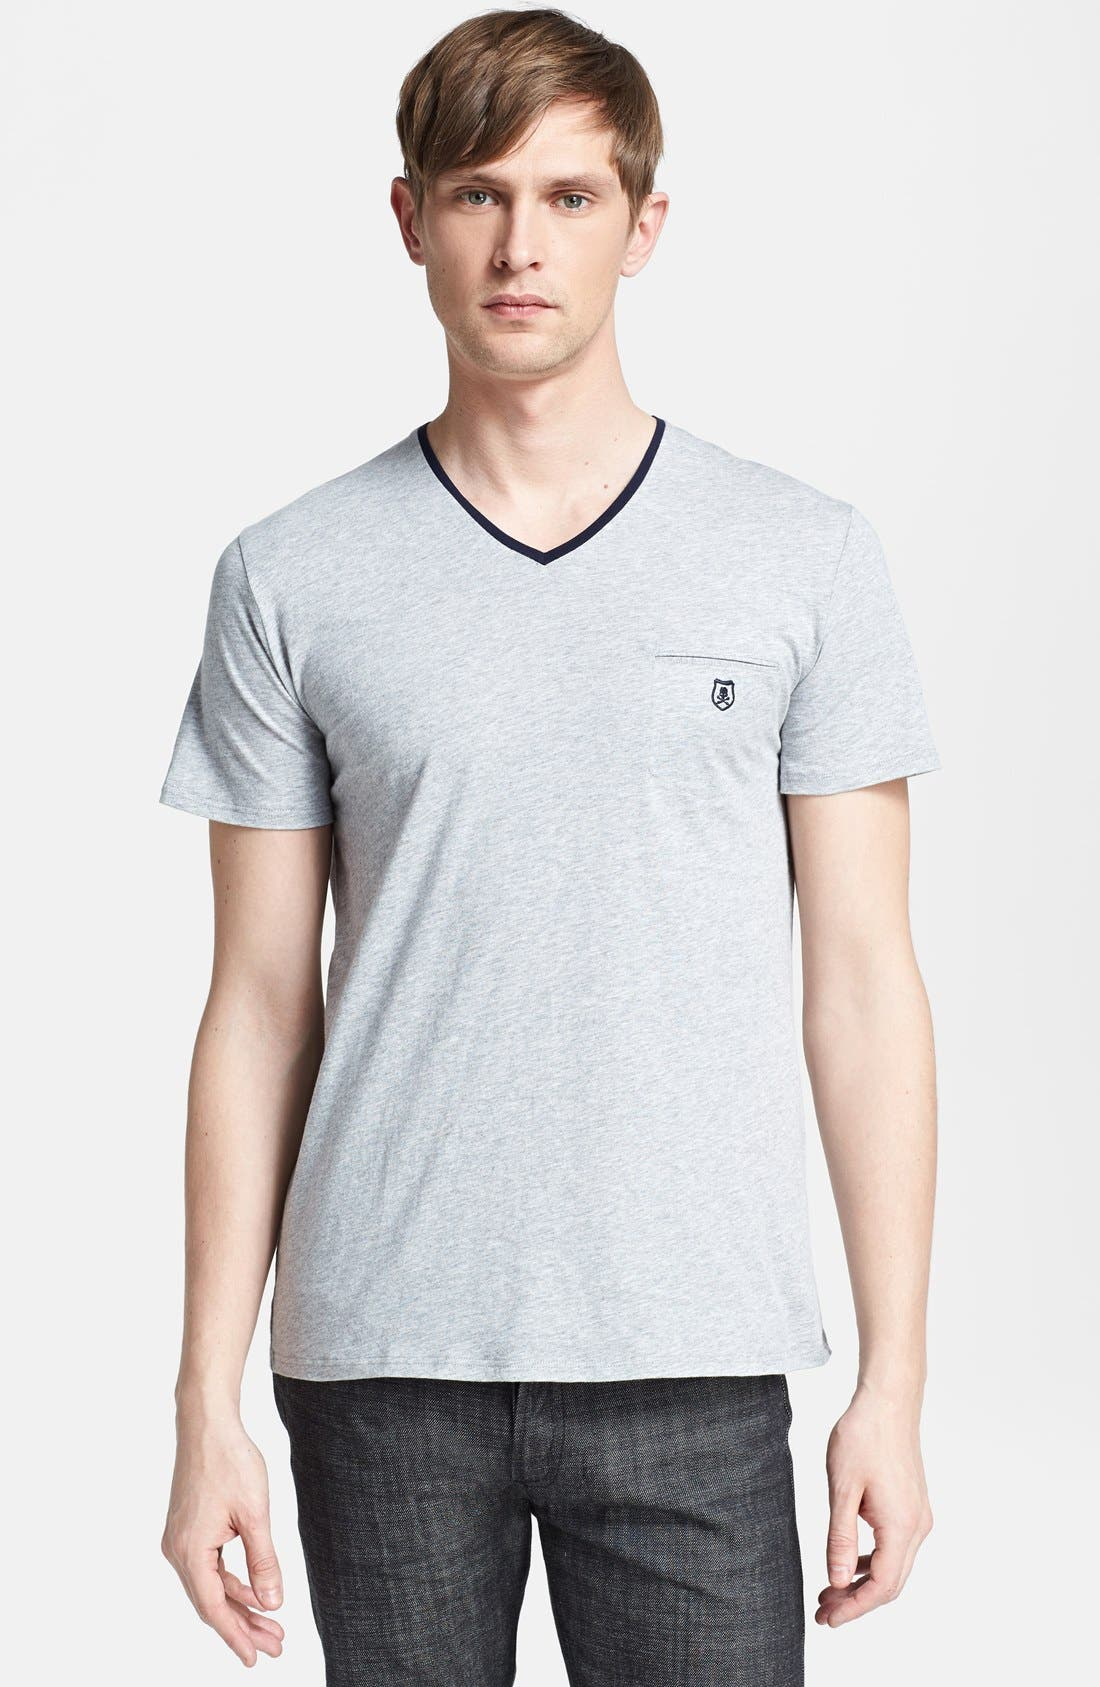 Alternate Image 1 Selected - The Kooples Embroidered Pocket V-Neck T-Shirt